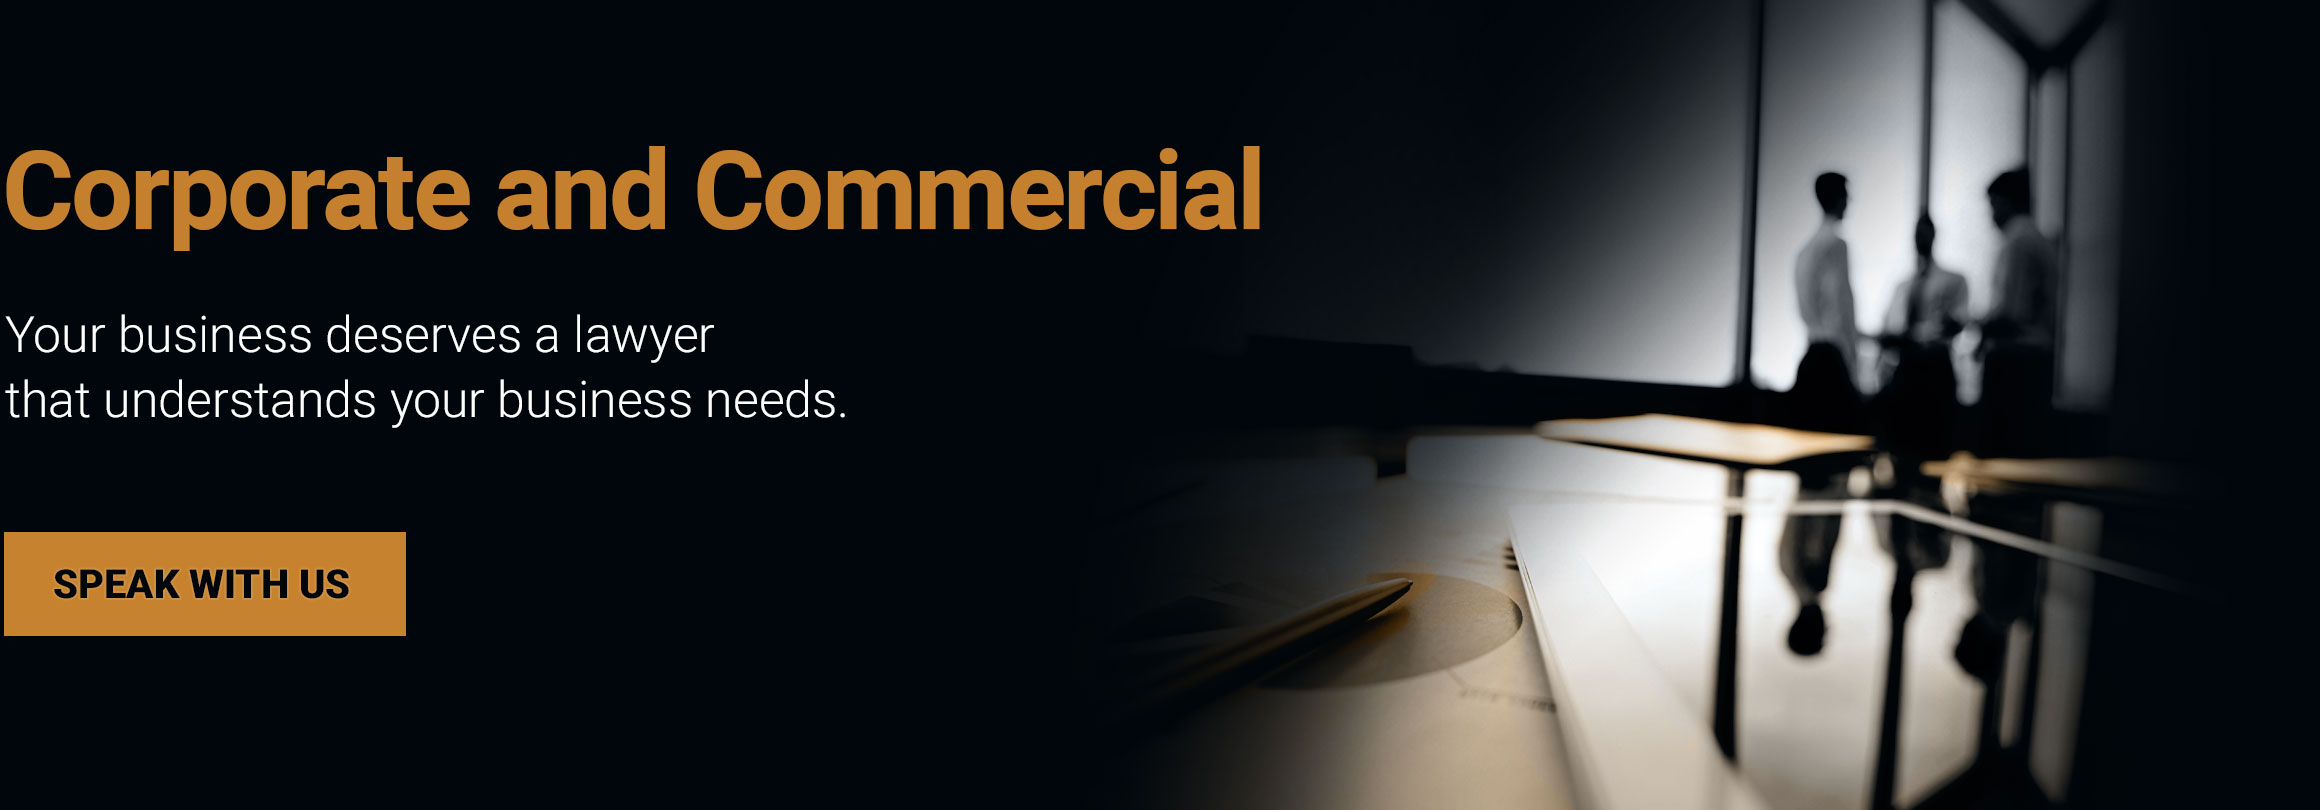 Corporate and Commercial